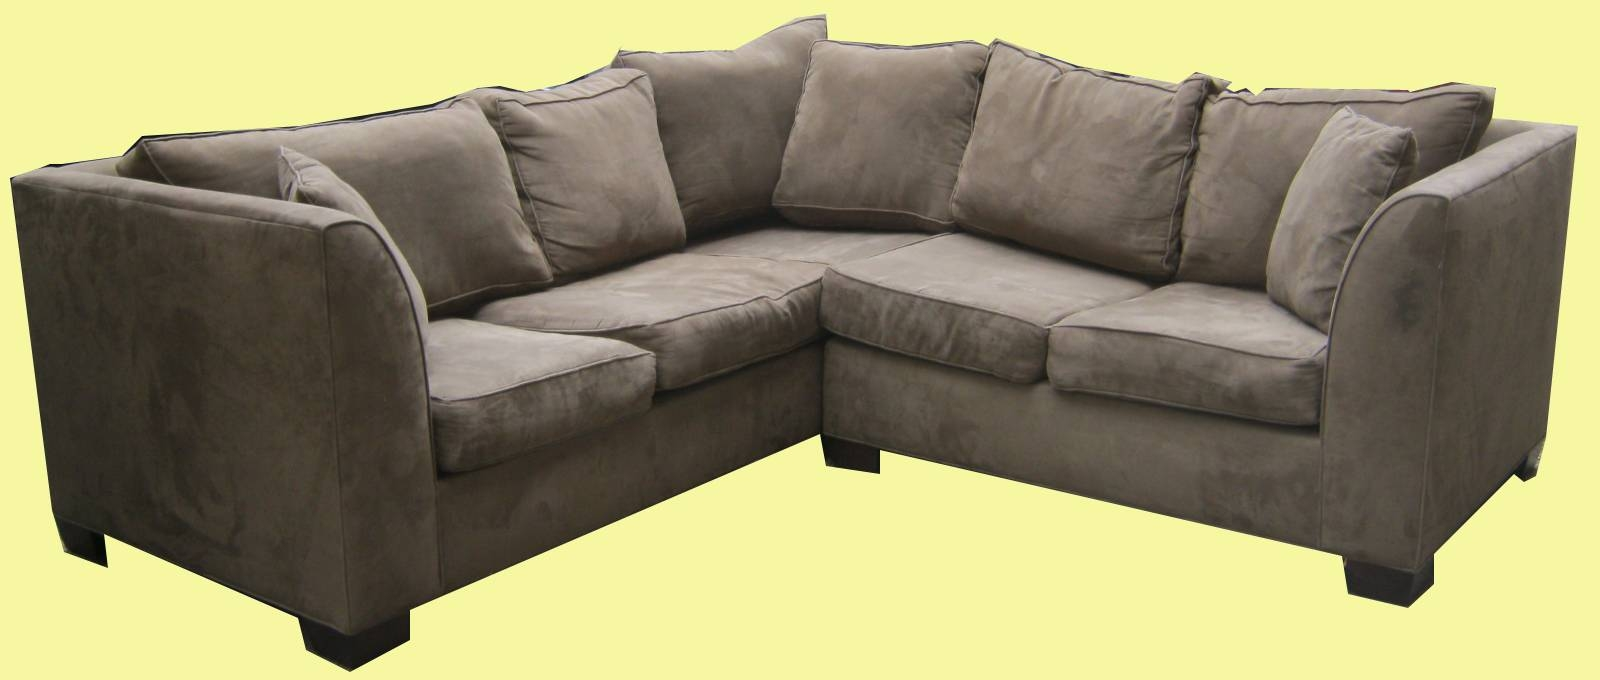 Uhuru Furniture & Collectibles: Olive Green 2 Pc Sectional Sofa Sold For Olive Green Sectional Sofas (View 9 of 15)